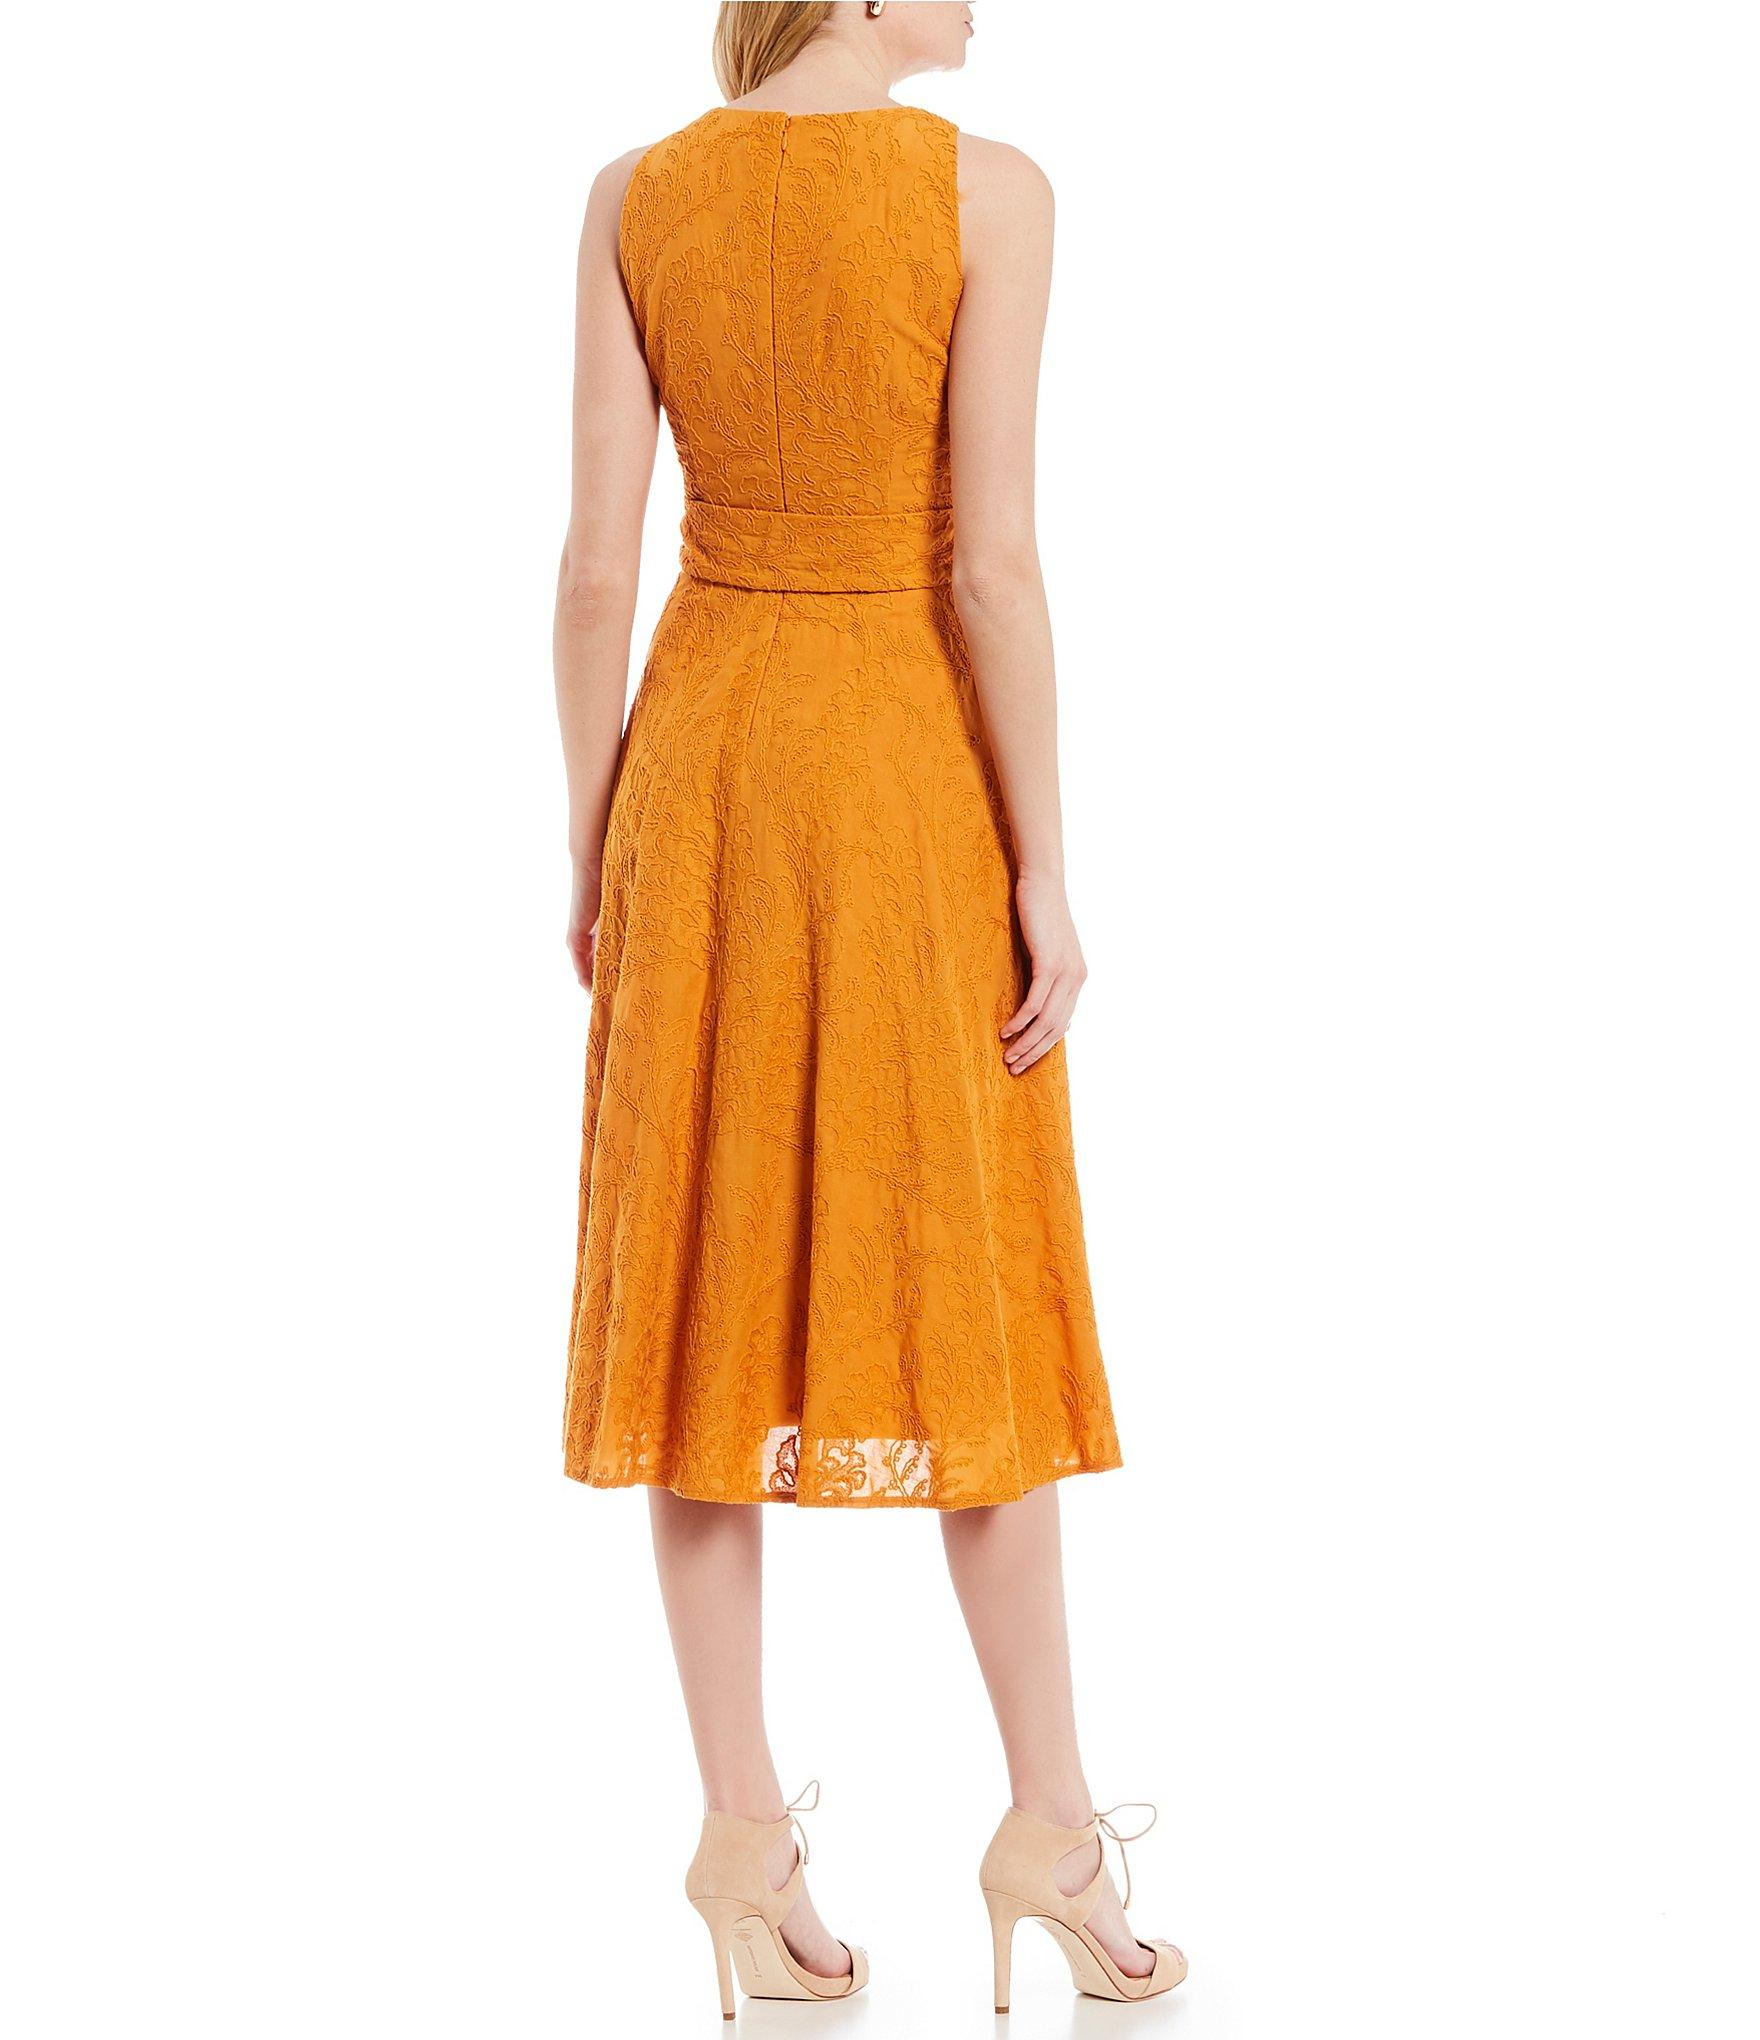 d89854e6fd9 Antonio Melani - Orange Kalin Sleeveless Tie Waist Midi Dress - Lyst. View  fullscreen